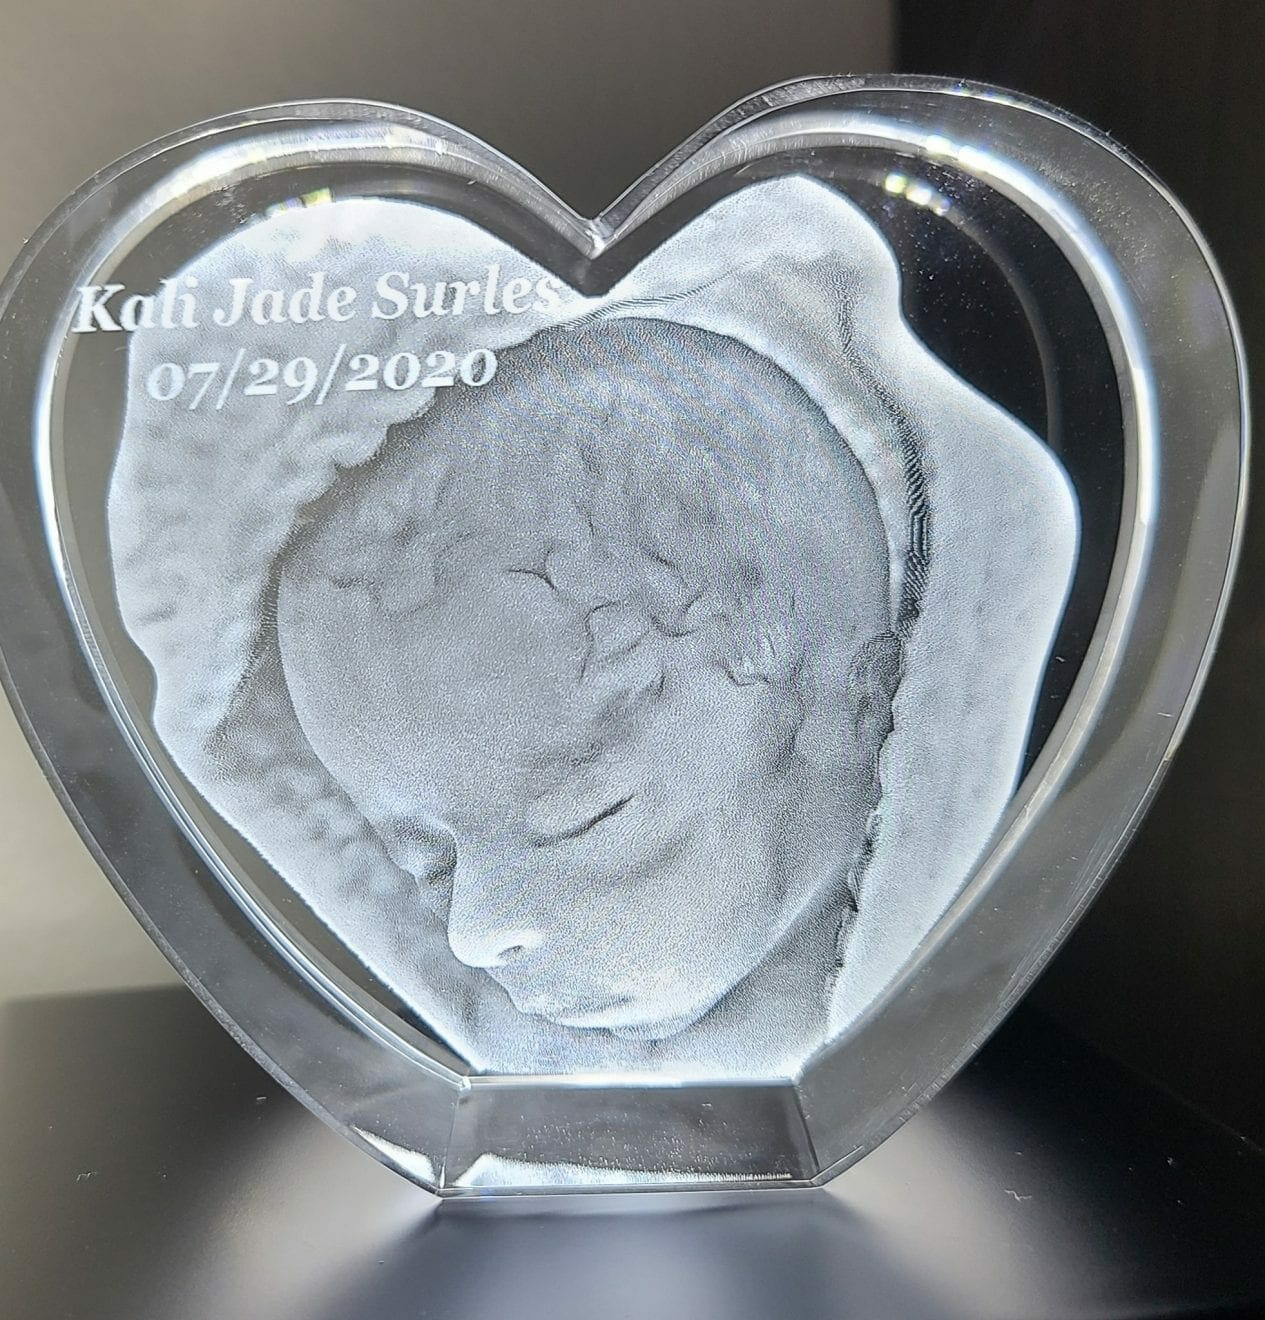 Art created in honor of Kali Jade Surles, contributed by mother Deneshia